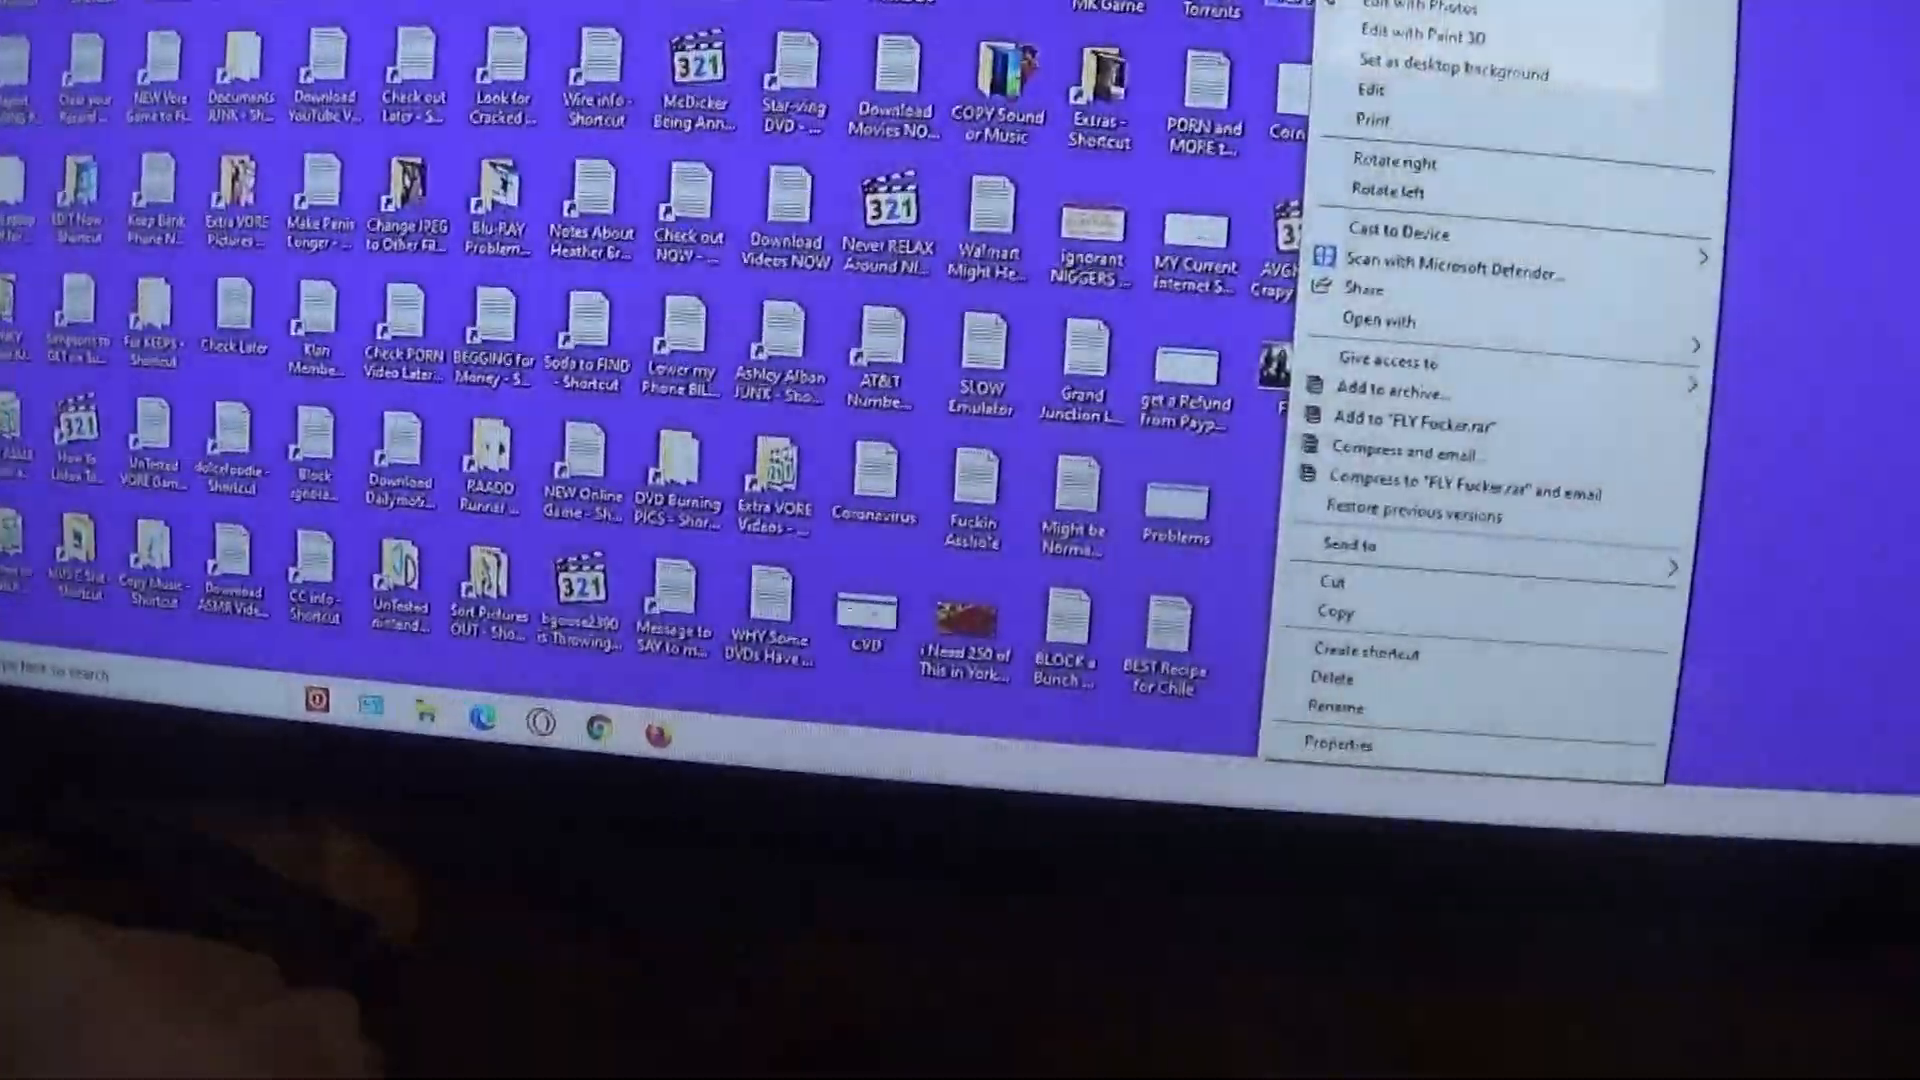 Using my Mouse Cursor With my FLY Fucker Picture on a FLY.